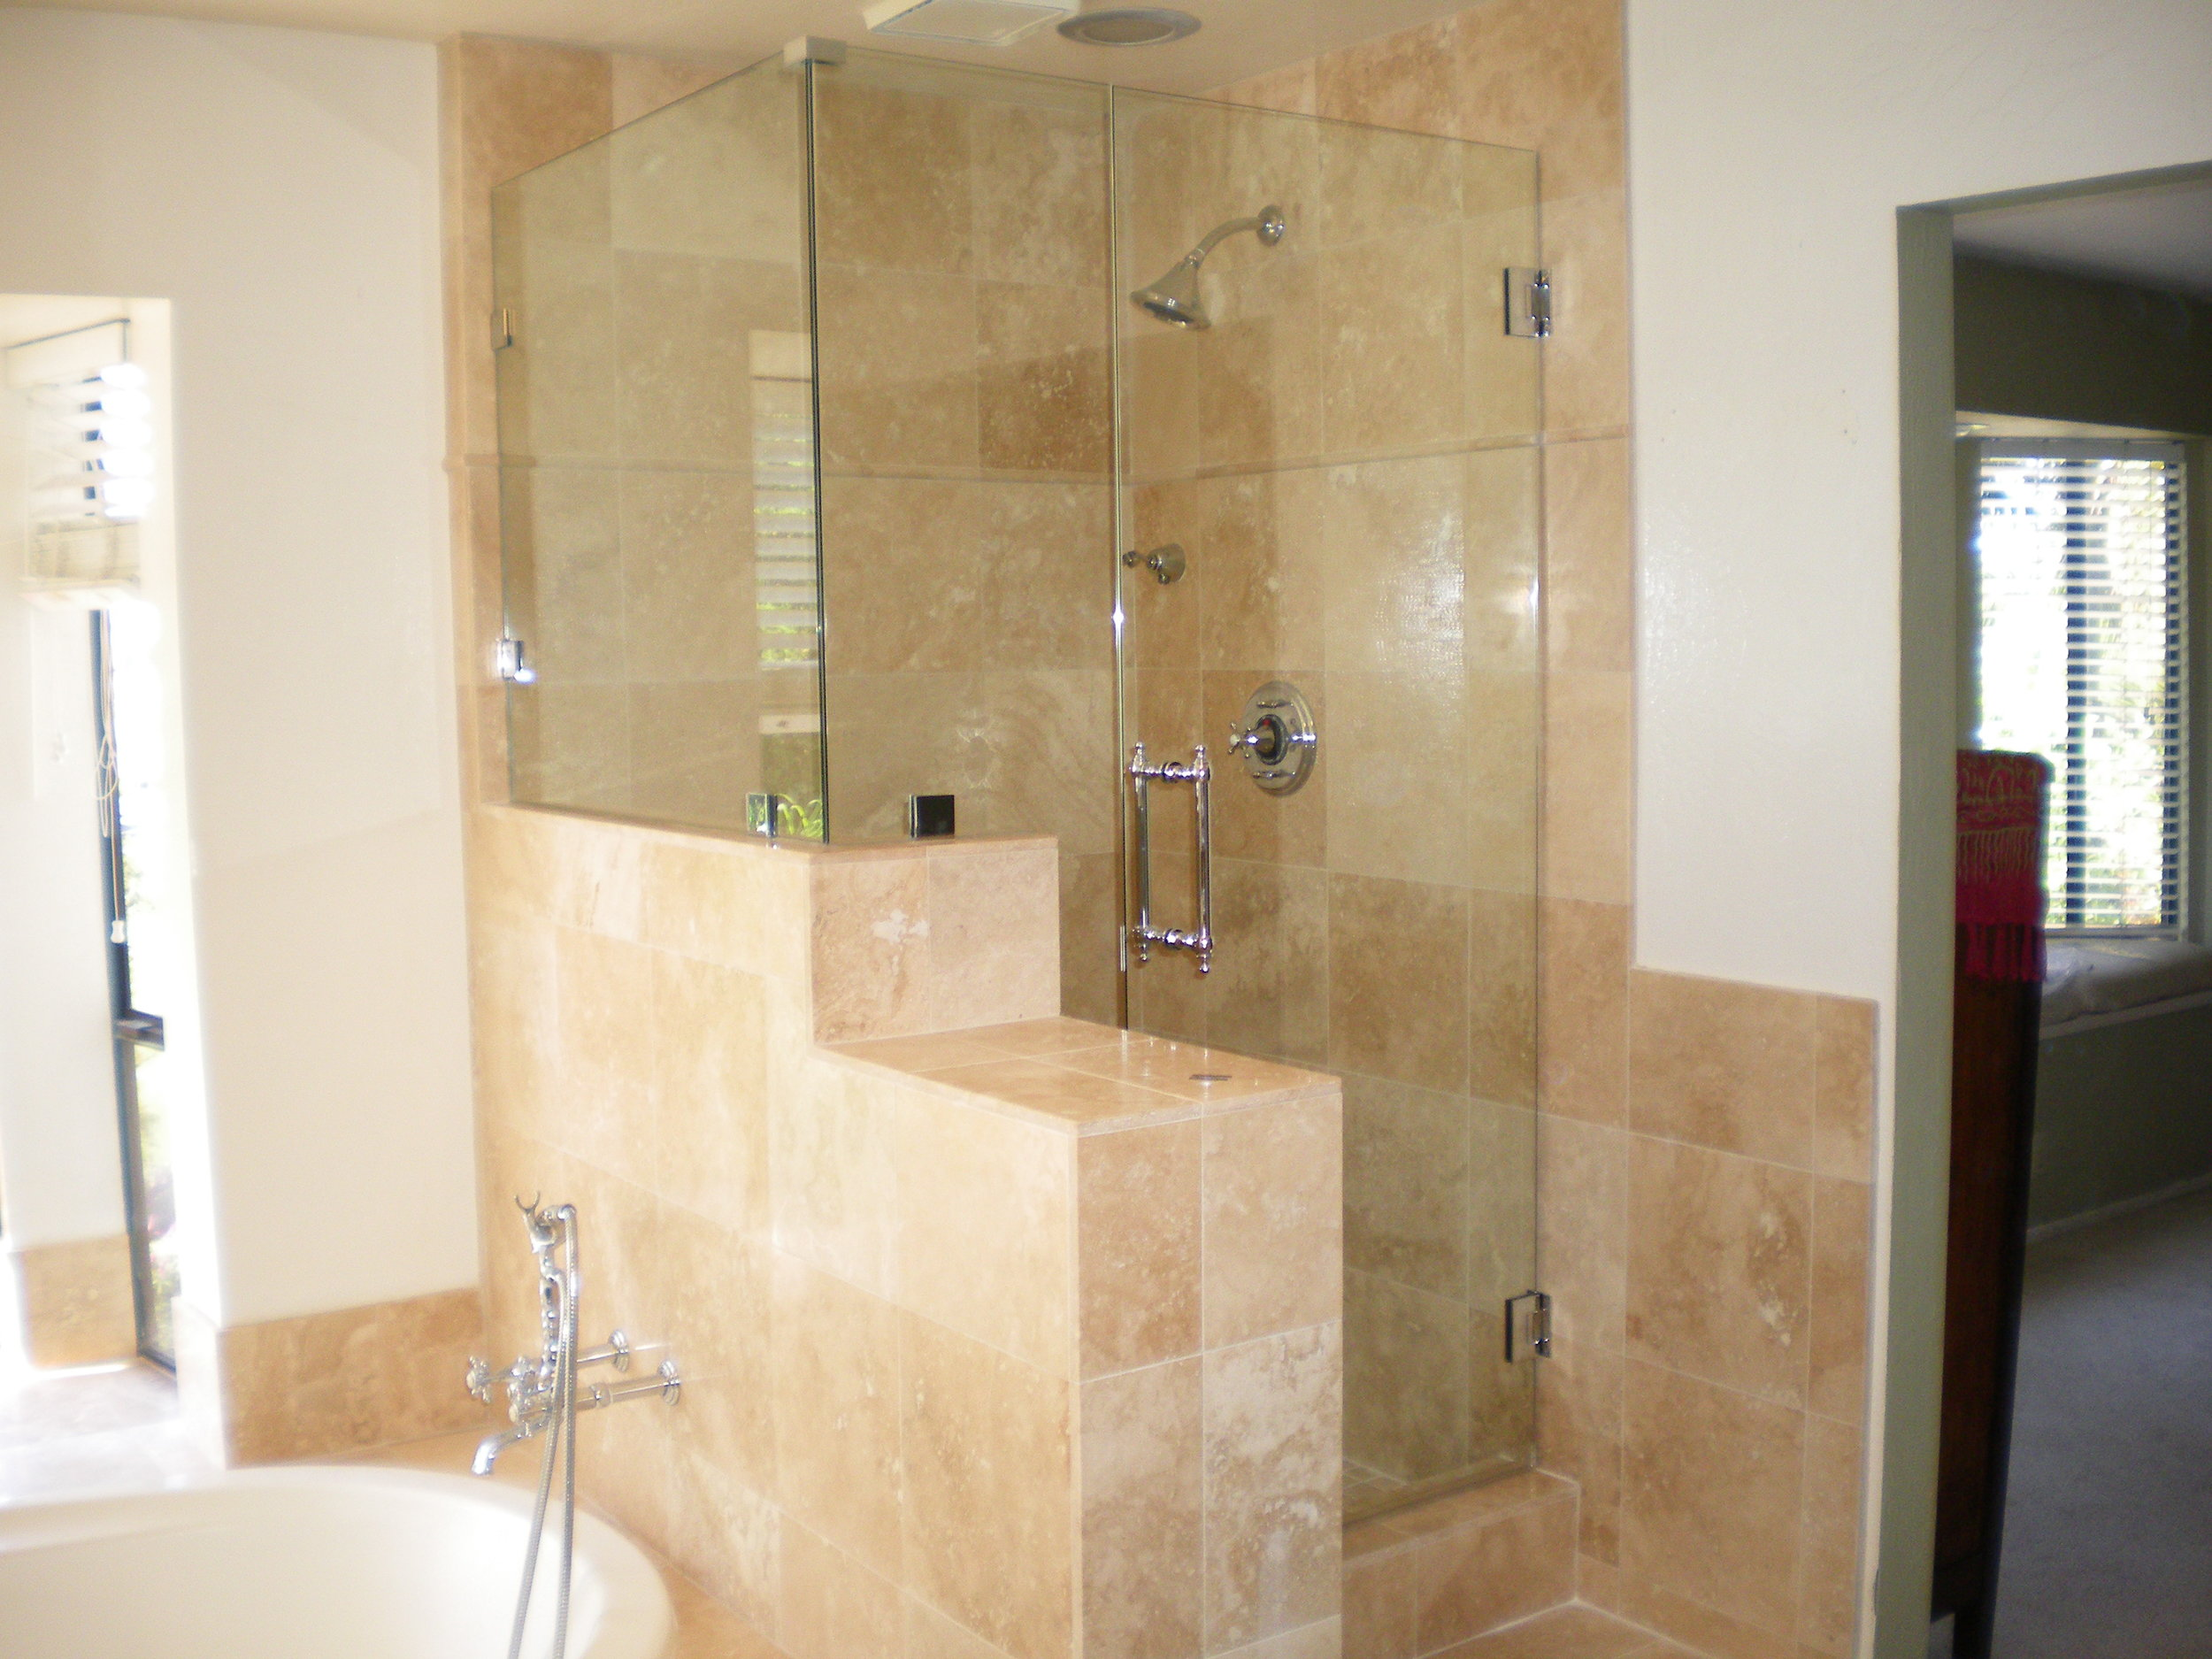 Shower-Doors-Residential-Photos-6.jpg